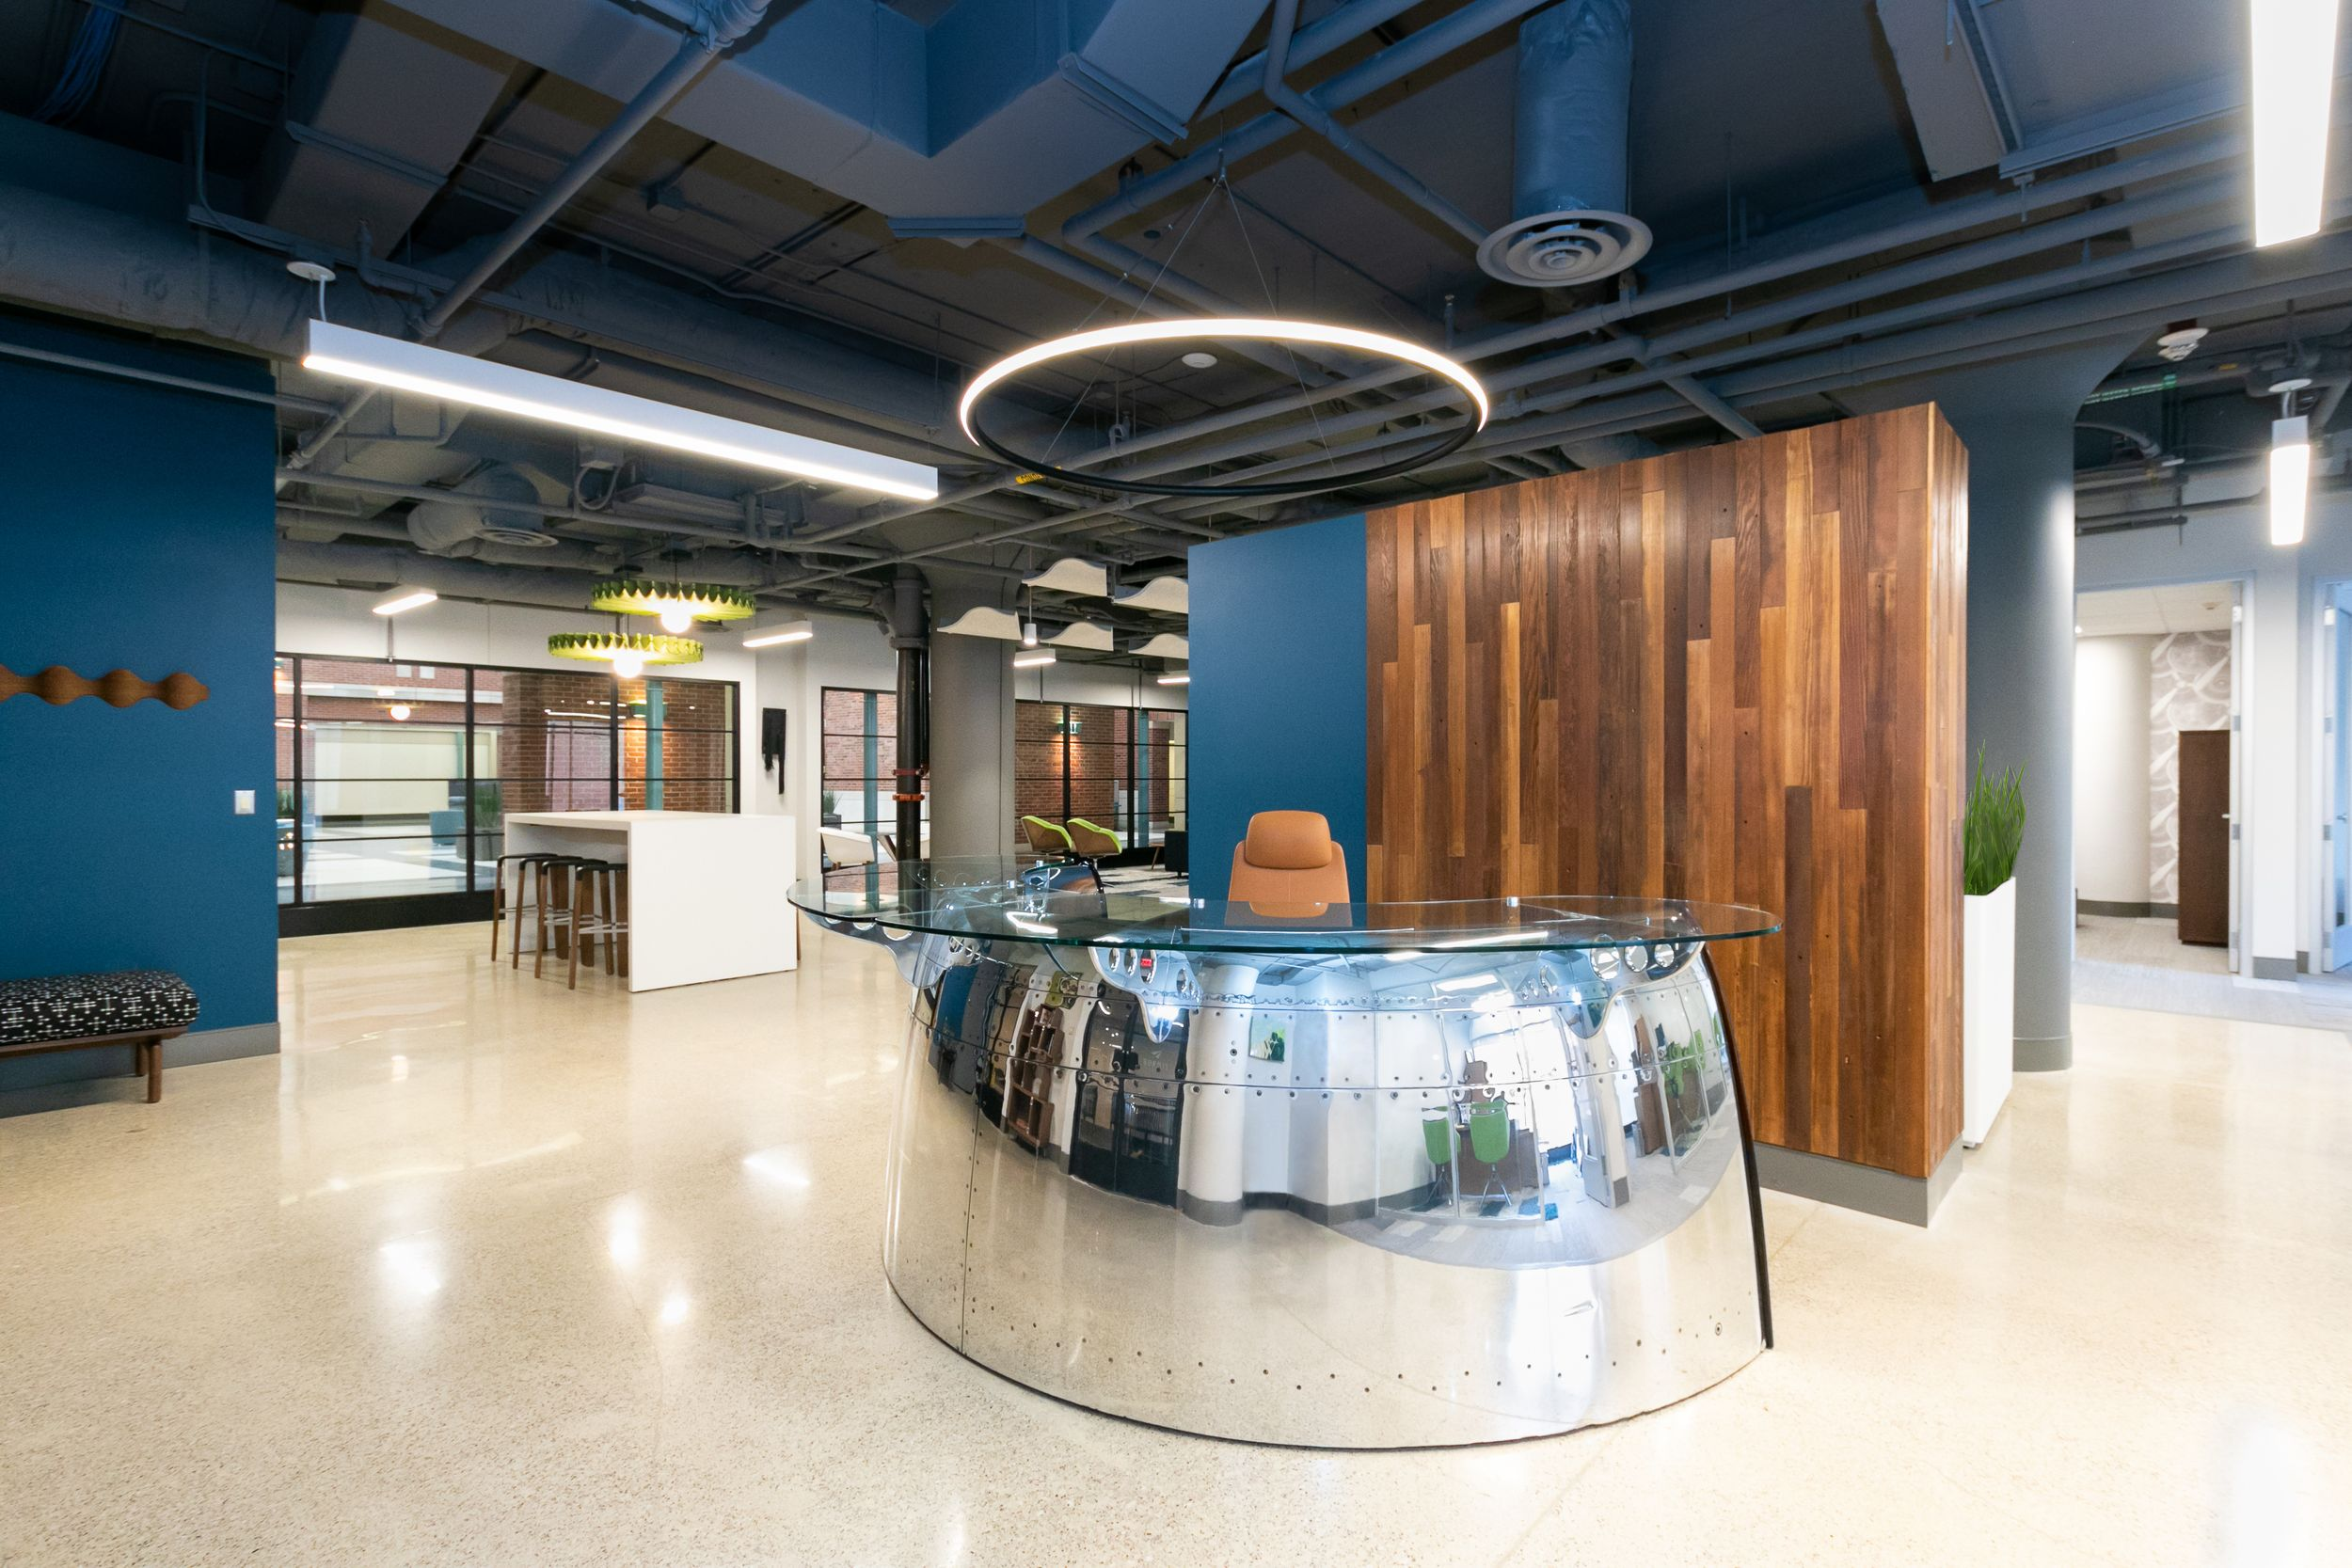 Customer reception design built from a Boeing 747 propeller welcomes visitors into Burris Law firm in Detroit.